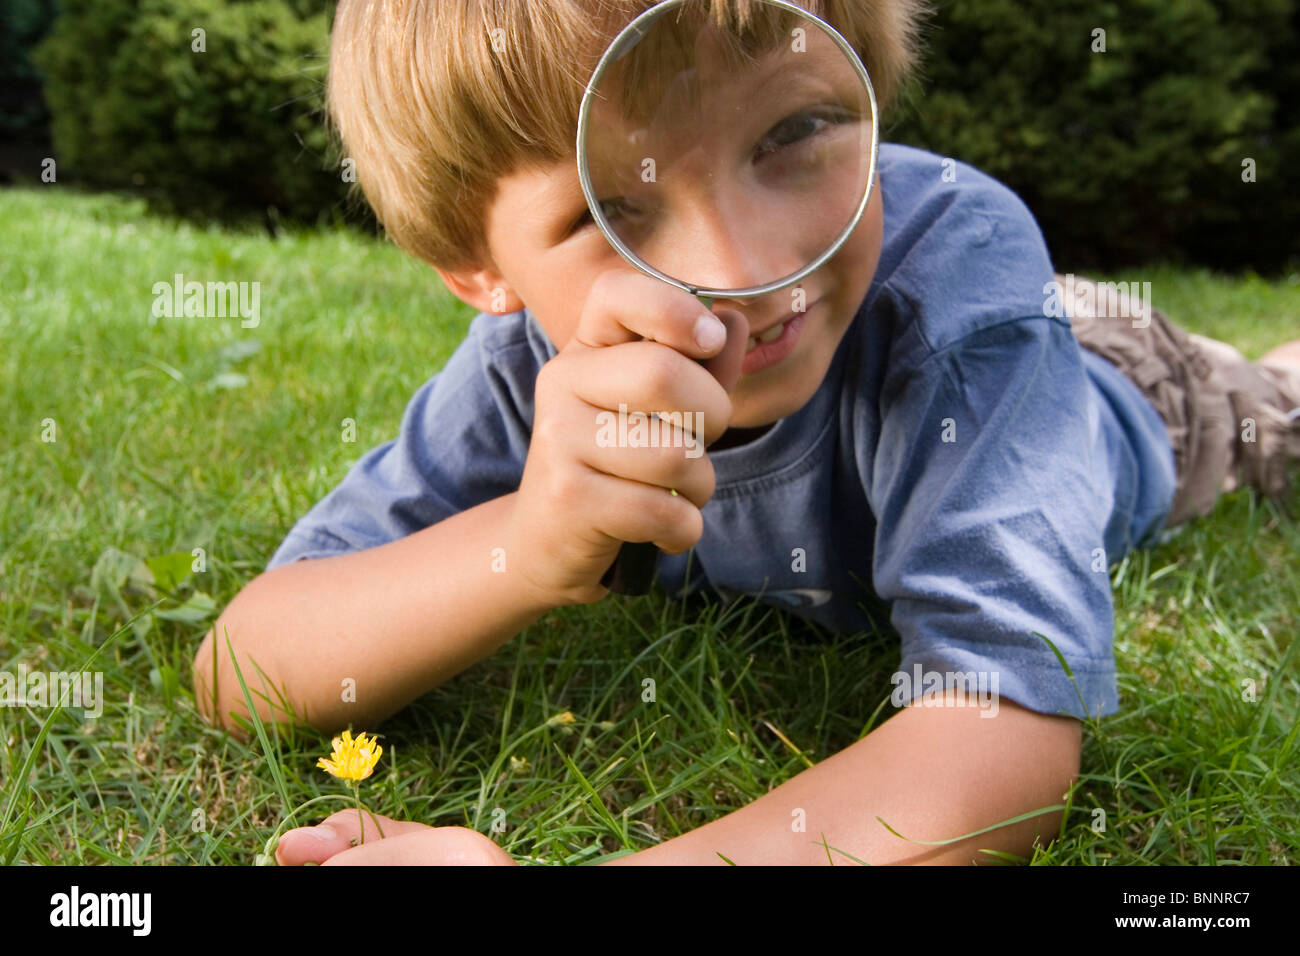 seven-year-old school age boy child boy curiously curiosity thirst for knowledge thirst for knowledge knowledge - Stock Image